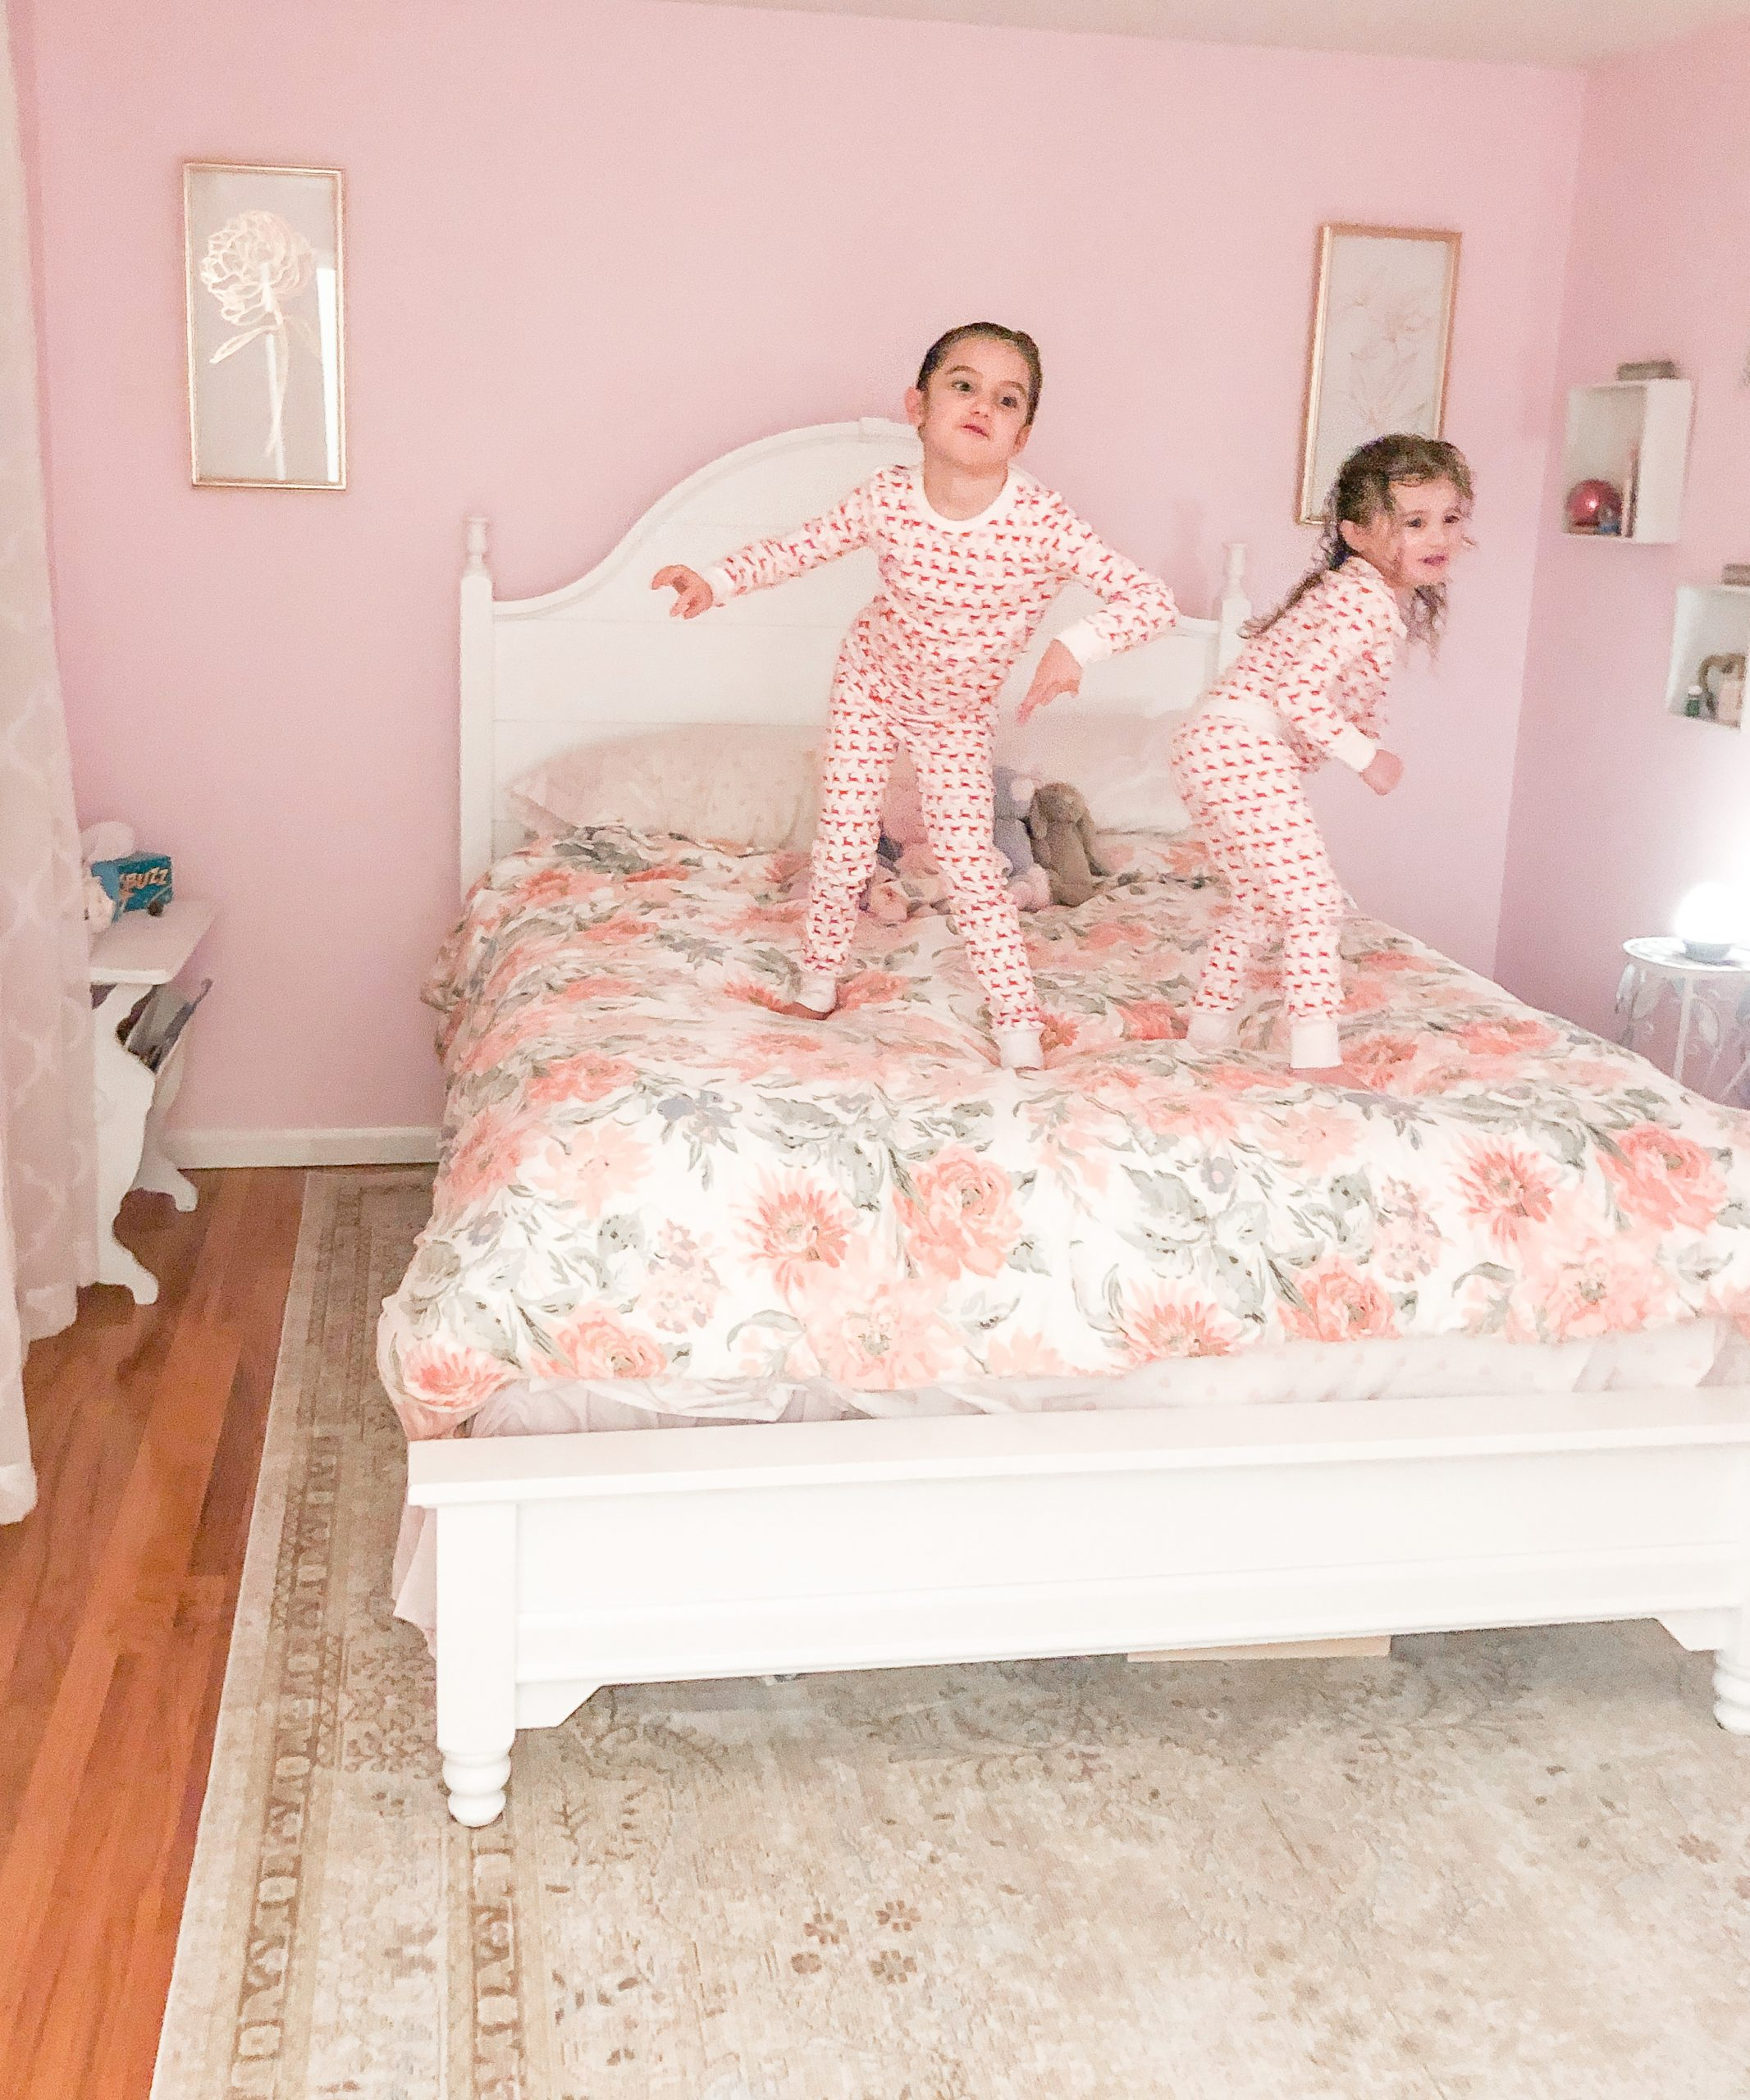 little girls jumping on bed in pink bedroom walls, white bed with floral bedding, white sheer curtains